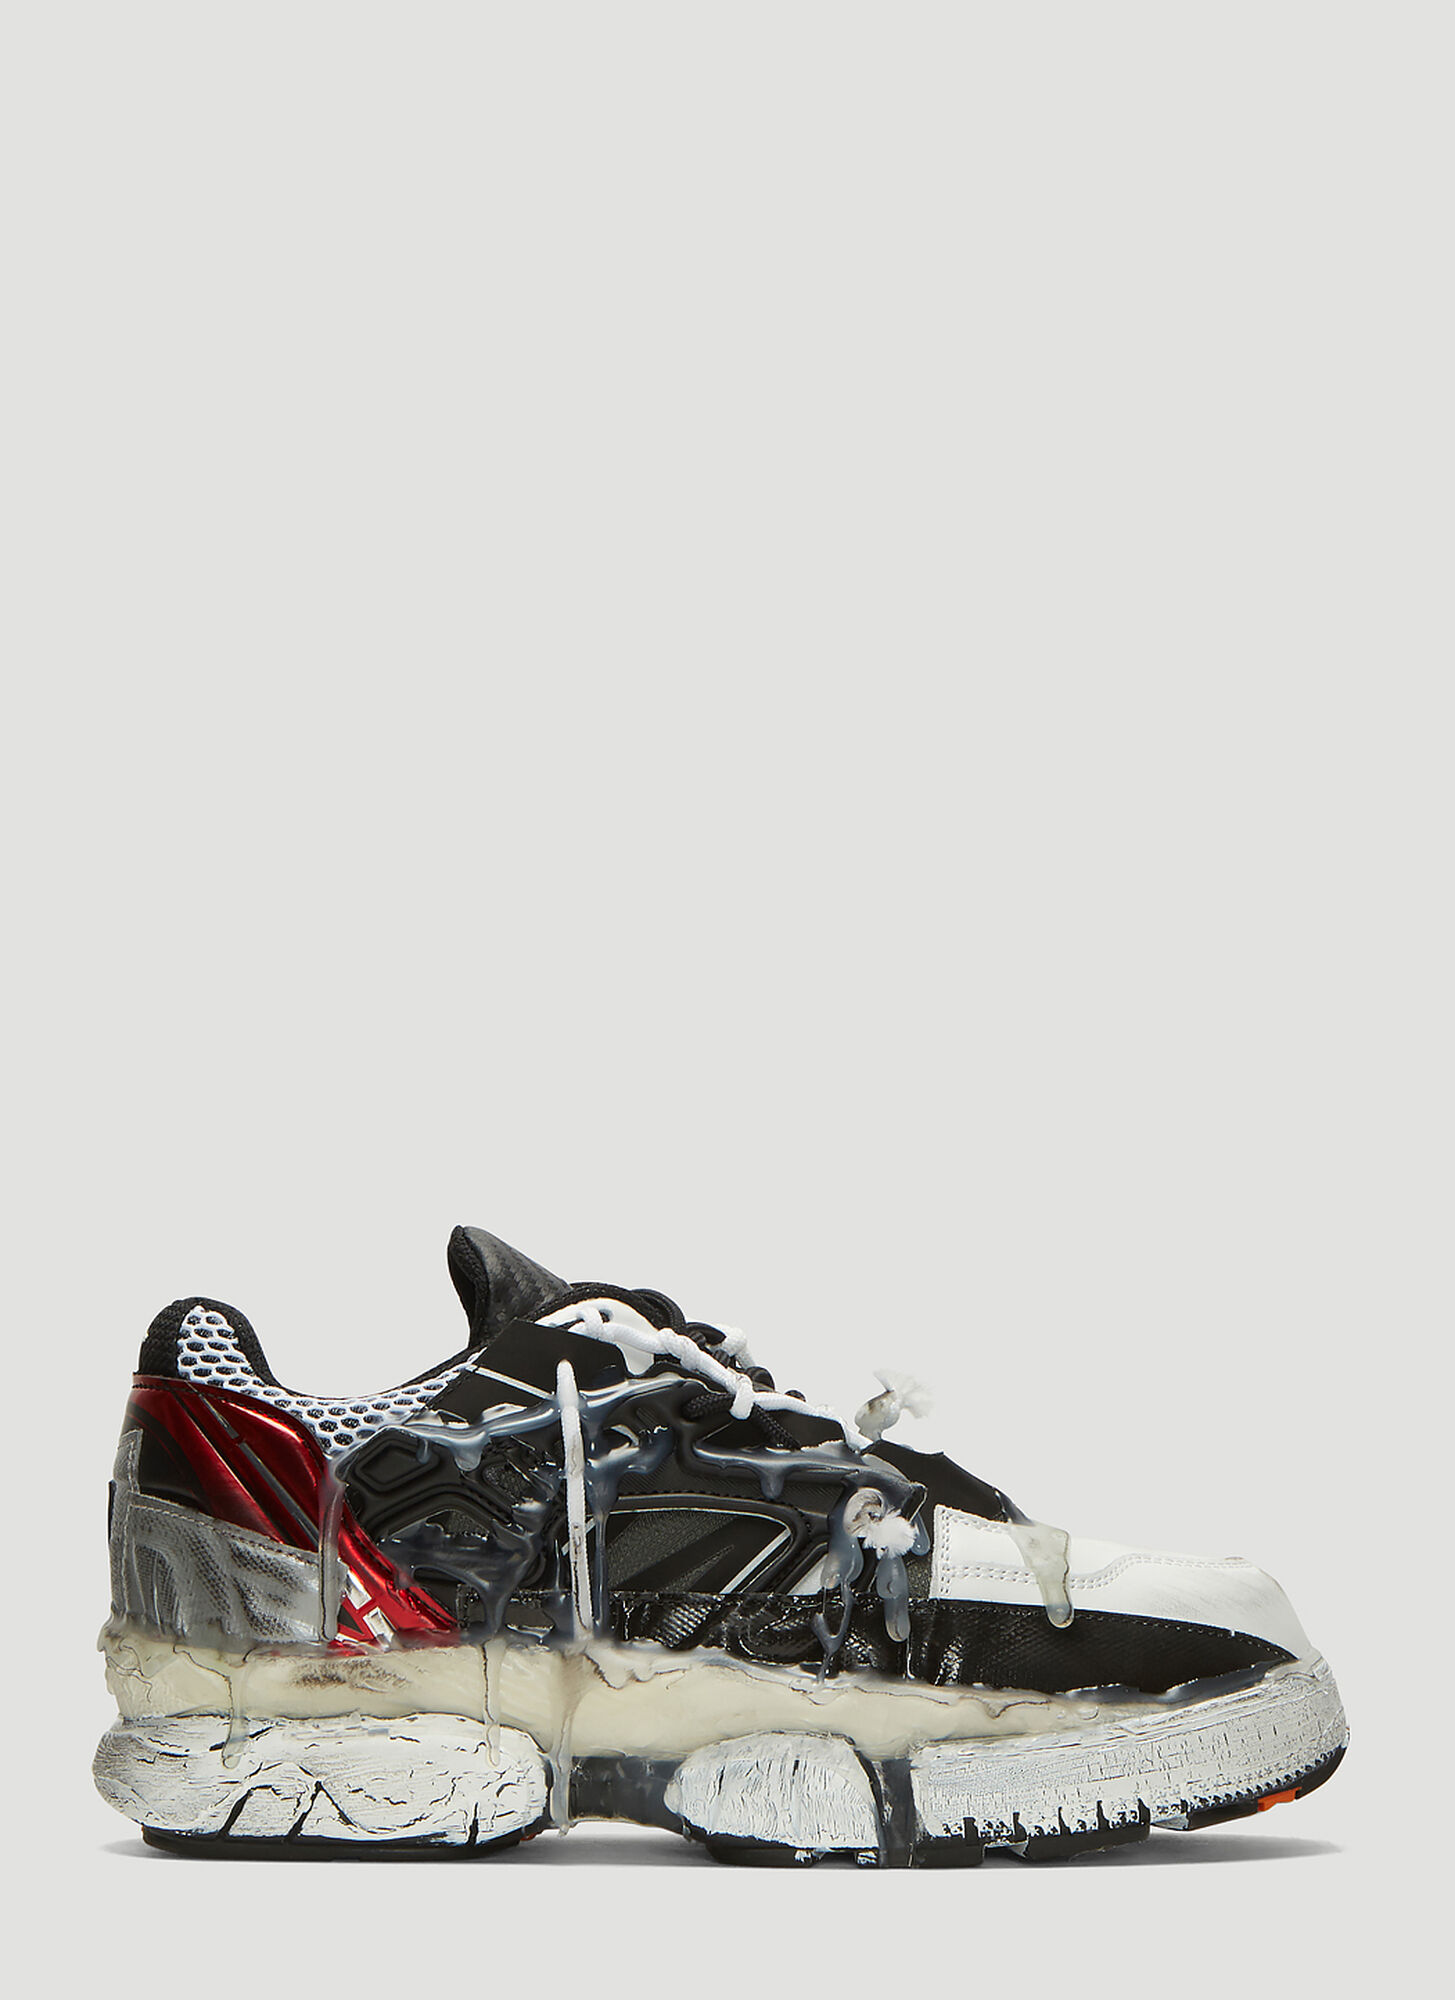 Maison Margiela Fusion Sneakers in Black